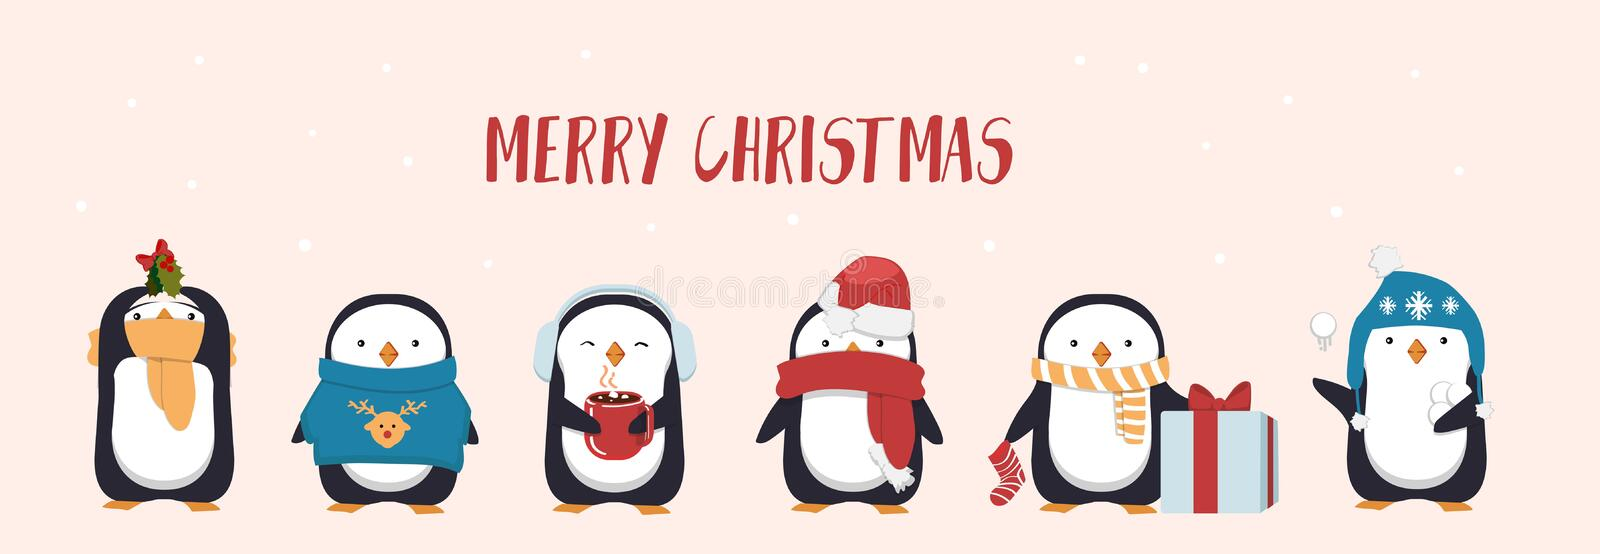 Merry Christmas greeting card with cute penguin. Seasonal character penguins wearing hats, scarf and holding gifts and mugs. Flat vector illustration